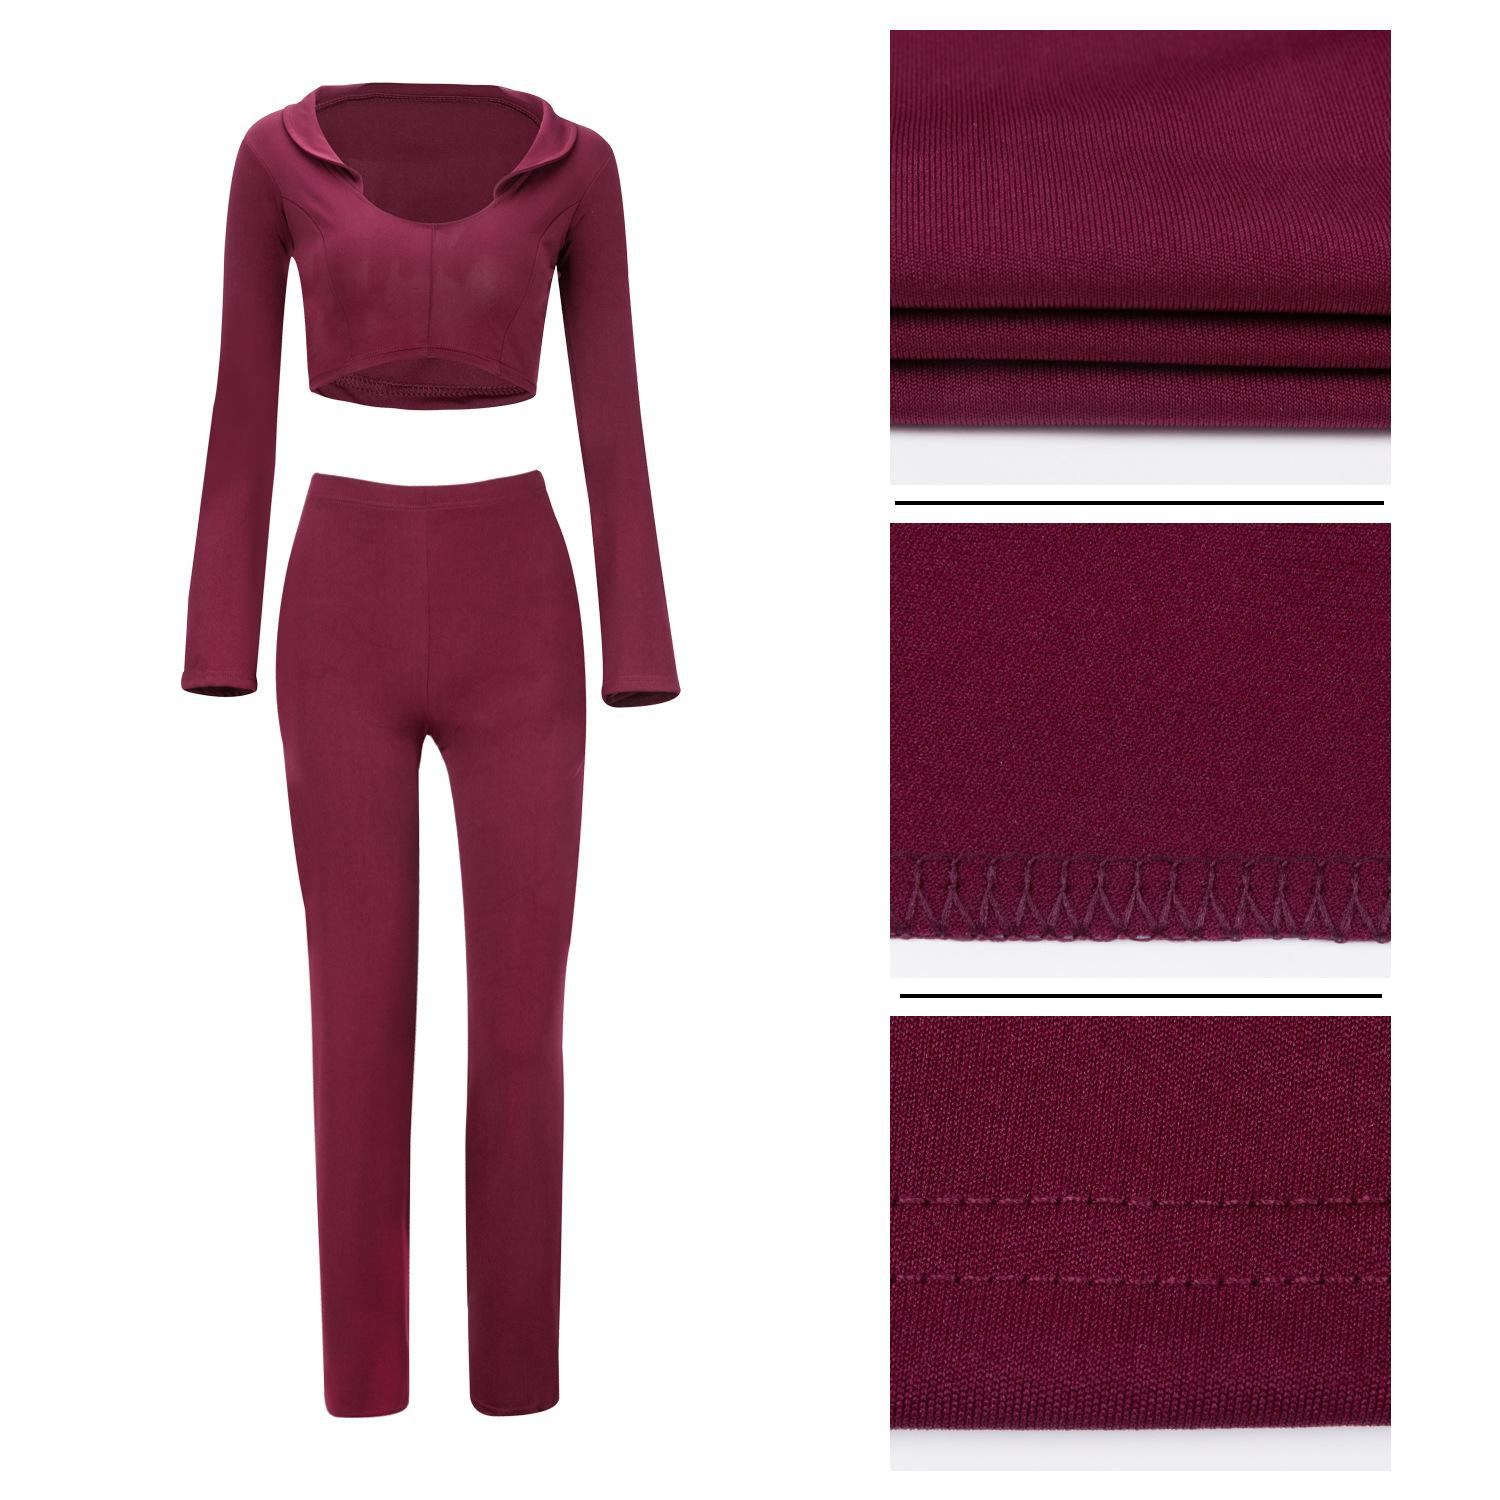 Sexy Women Two Piece Sets Deep V Flare Sleeve Crop Tops + Long Pants Casual Plus Size Bodycon Outfits Jumpsuits